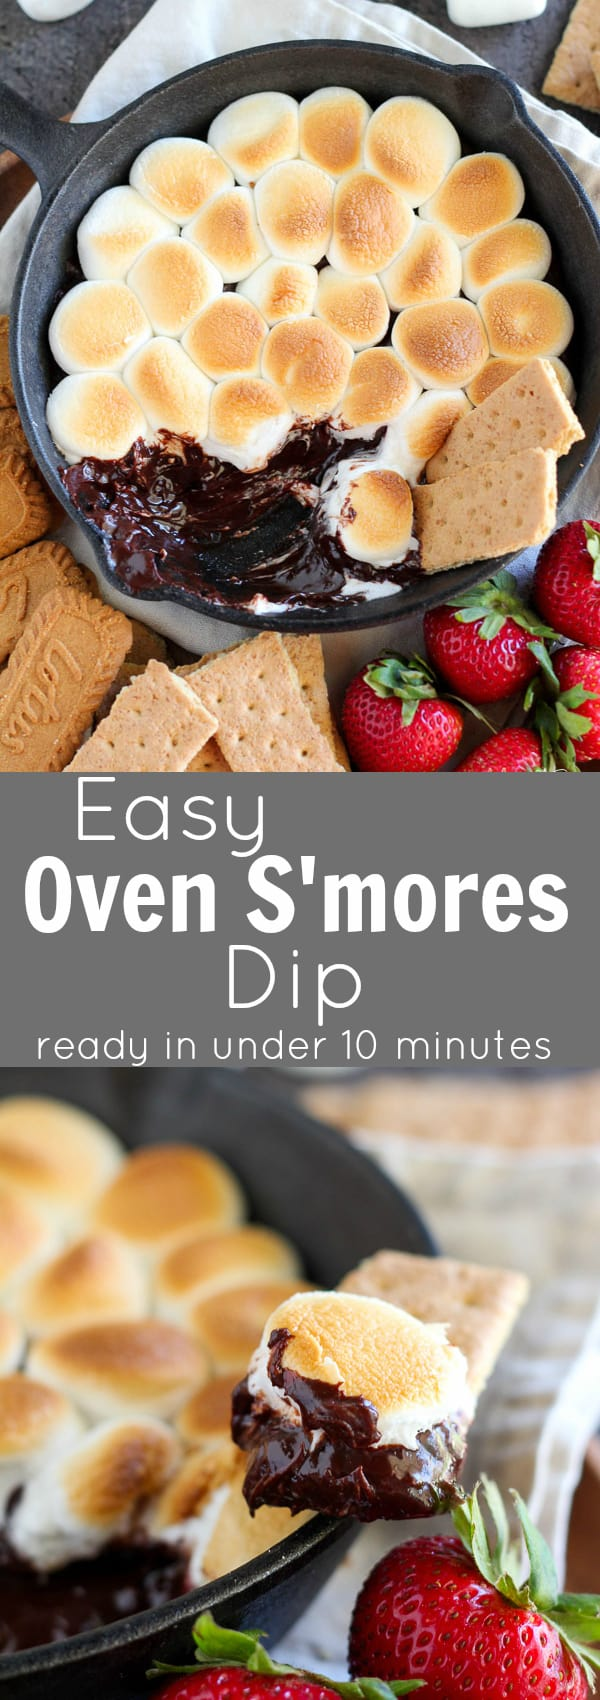 Easy Oven S'mores Dip - Ready in under 10 minutes!